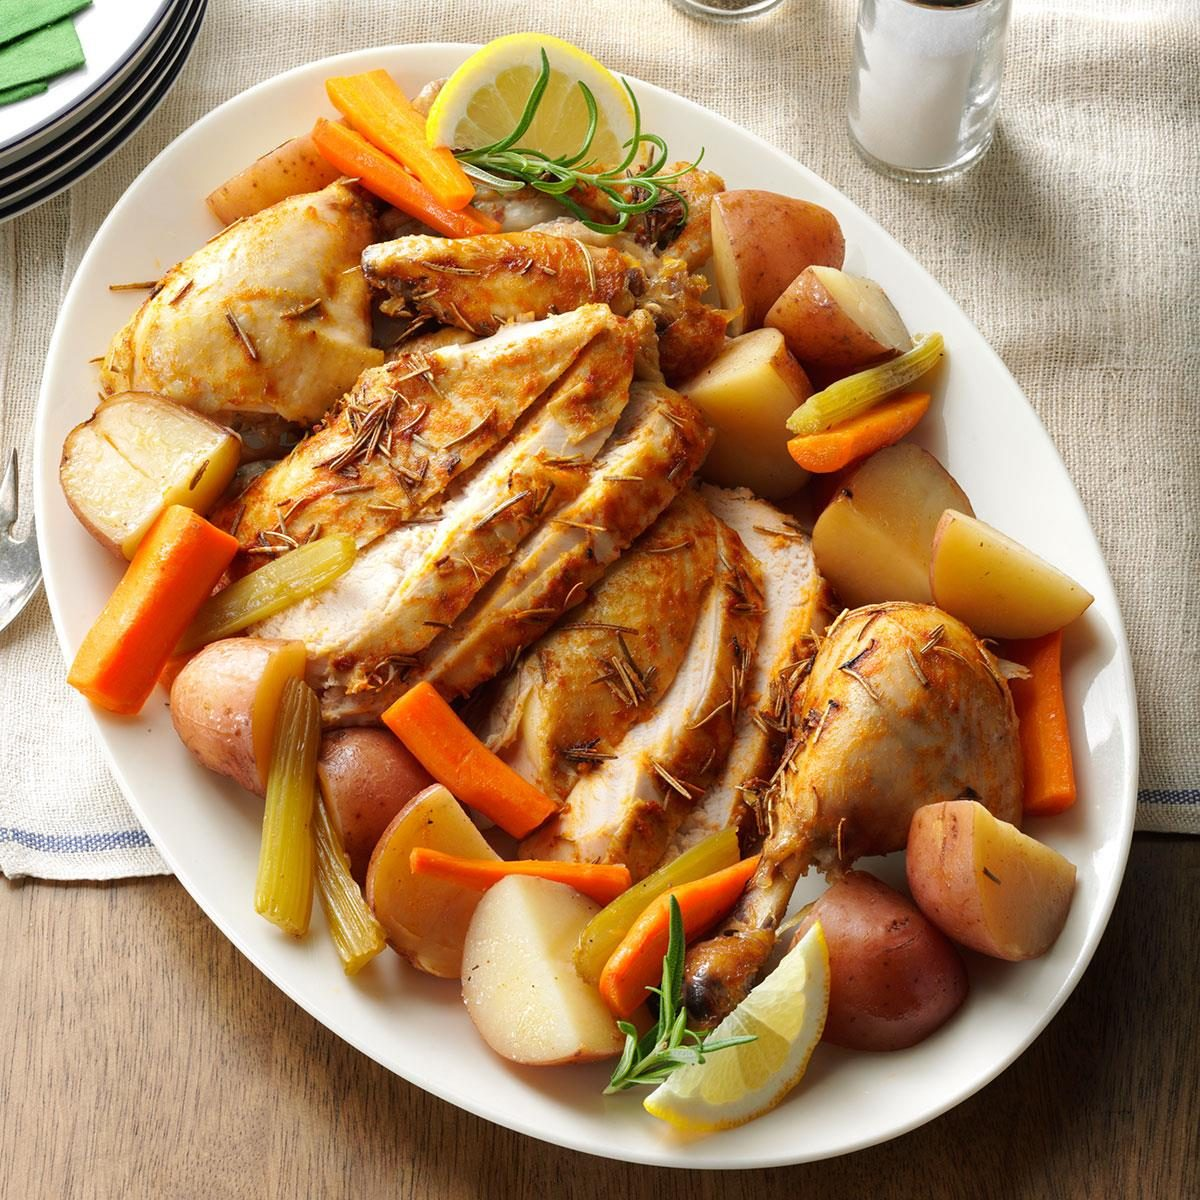 Aug 27,  · Add chicken, carrots, potatoes to a 6-quart slow cooker. Pour honey glaze over the top, cover and cook 6 to 8 hours on low or 3 to 4 hours on high. Pour 1/2 cup honey glaze over chicken and algebracapacitywt.tk Time: 6 hrs 15 mins.